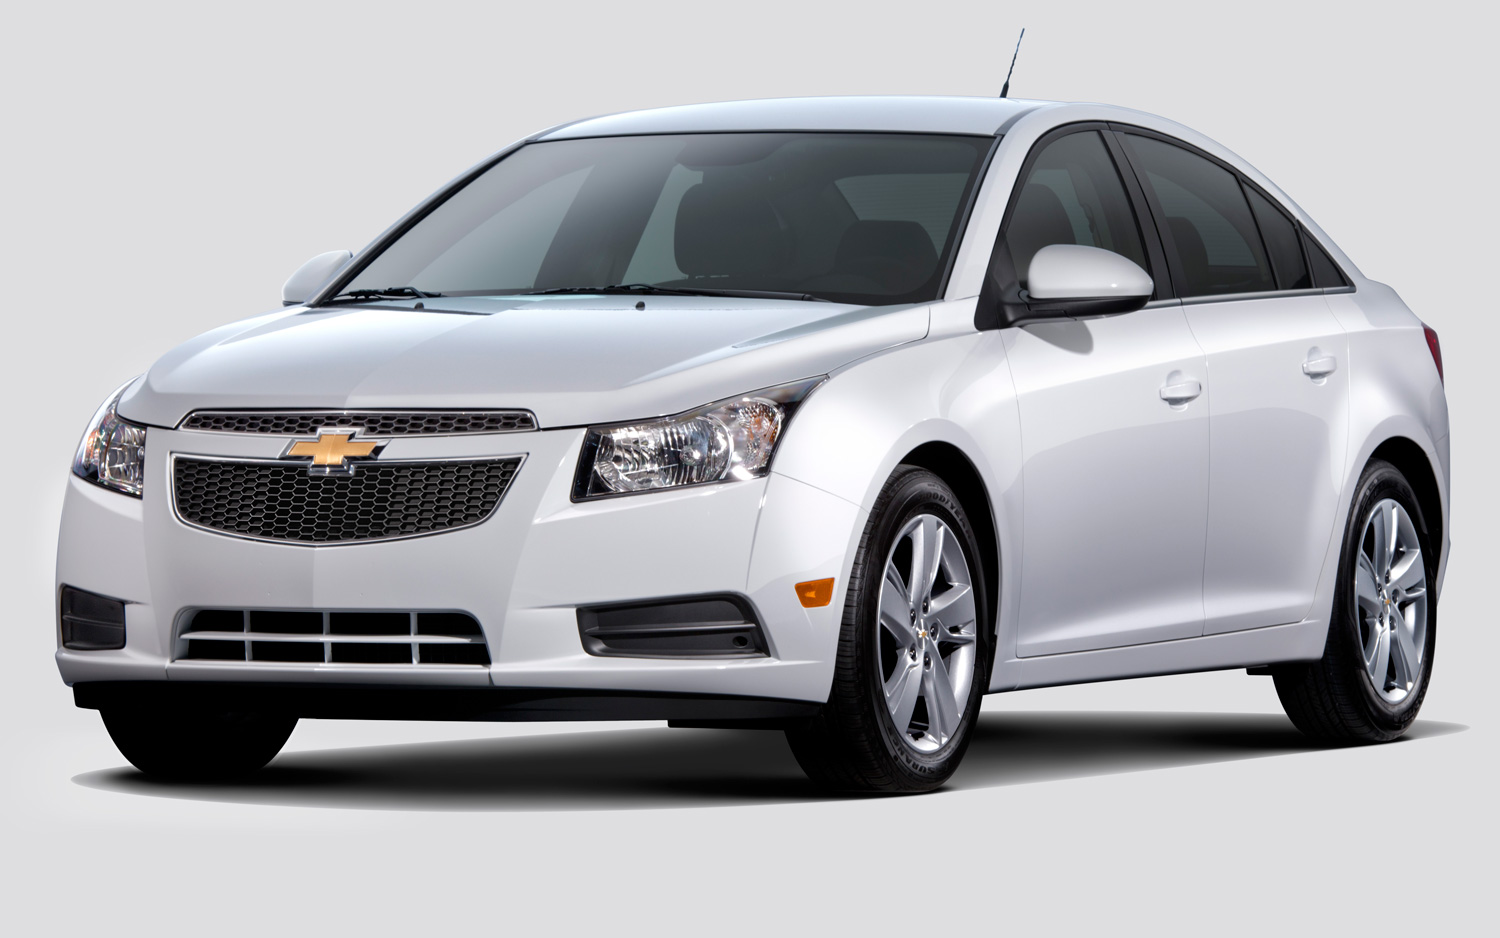 Chevrolet Cruze 2.0TD | New cars reviews